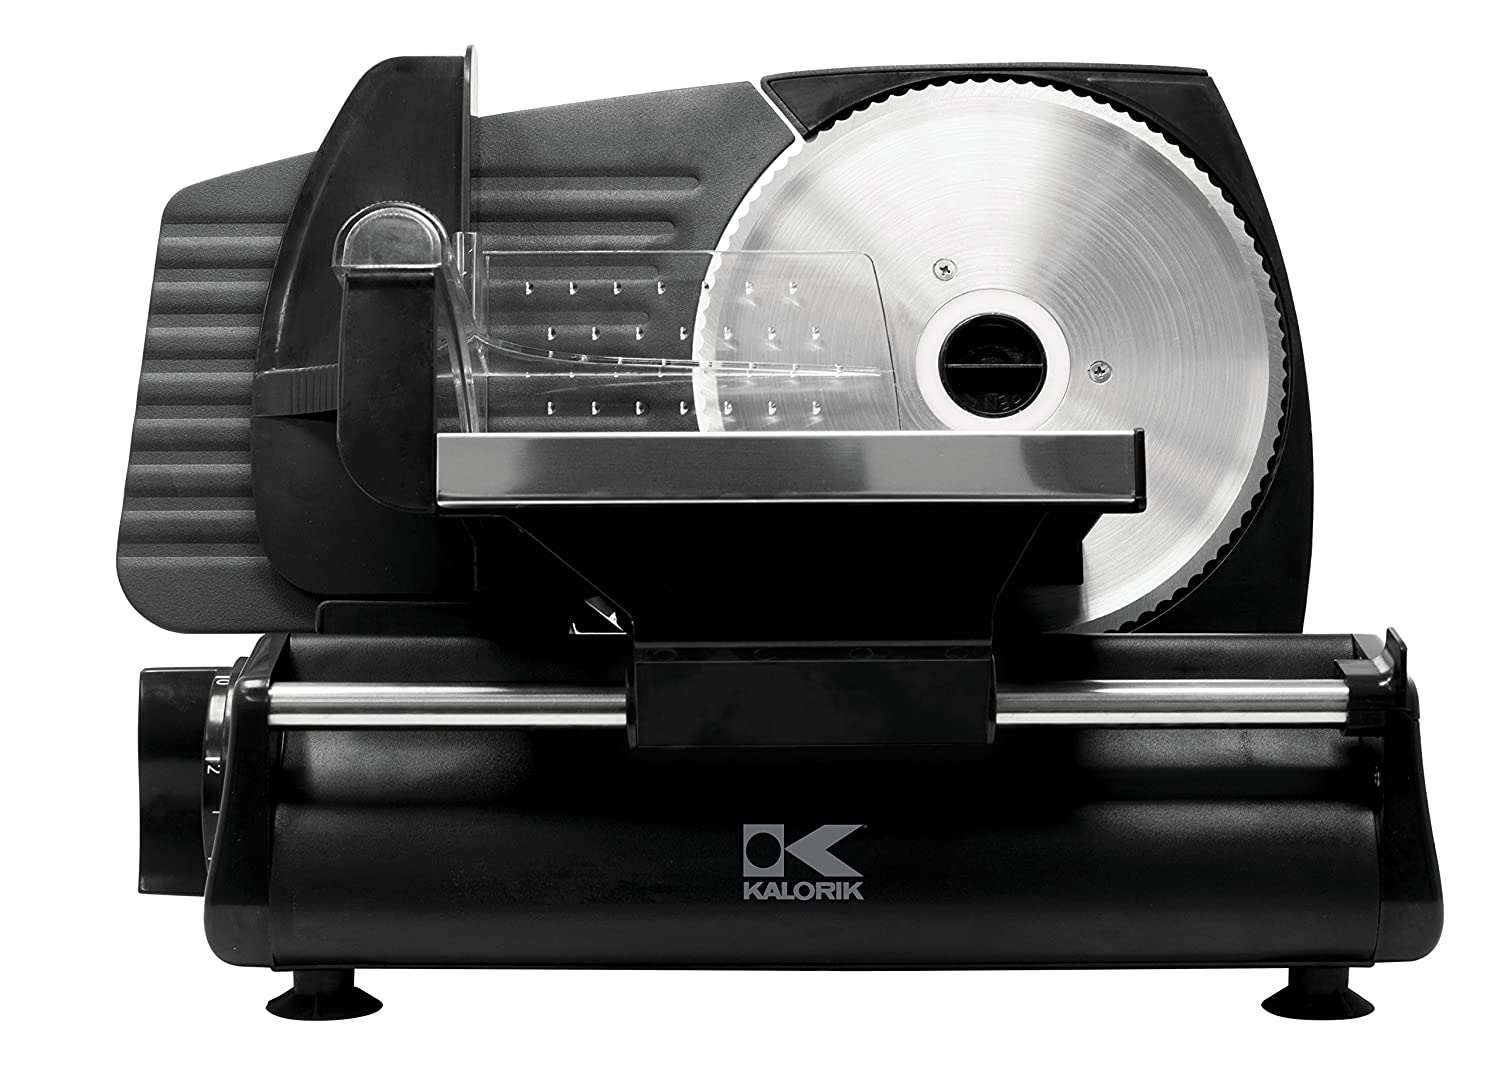 Kalorik Professional Grade Food Slicer, Safety Guard, Easy Clean, No Tool Required. Black.